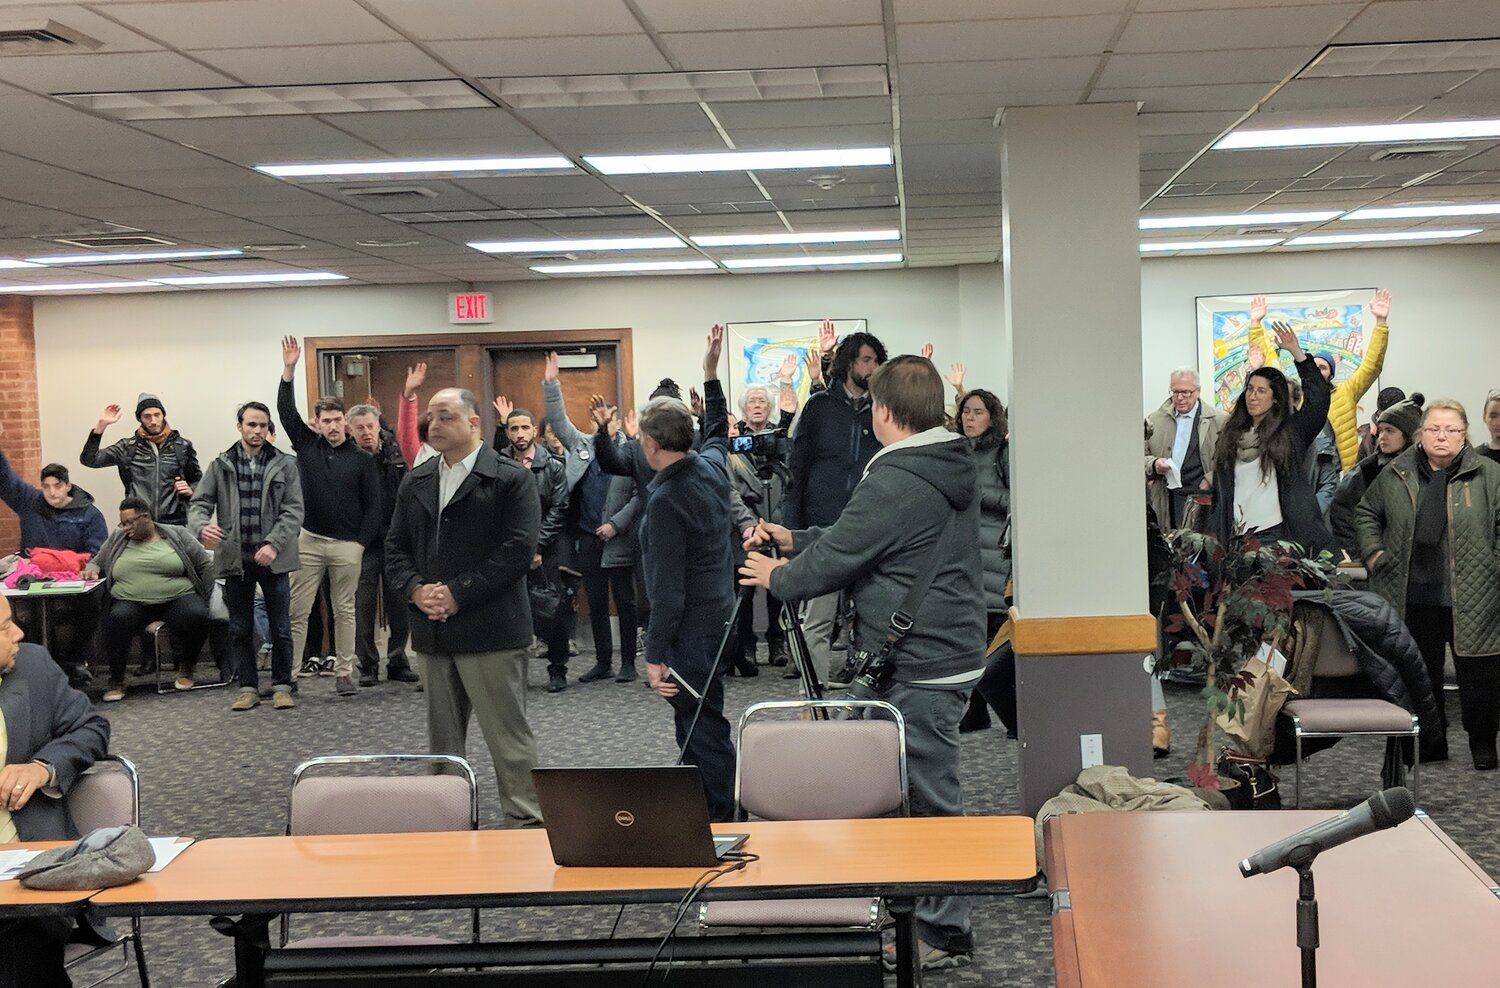 Nearly 100 opponents of the proposed waste facility on Allens Avenue in Providence raise their hands in silent protest at the Jan. 21 meeting of the City Plan Commission. (Tim Faulkner/ecoRI News)